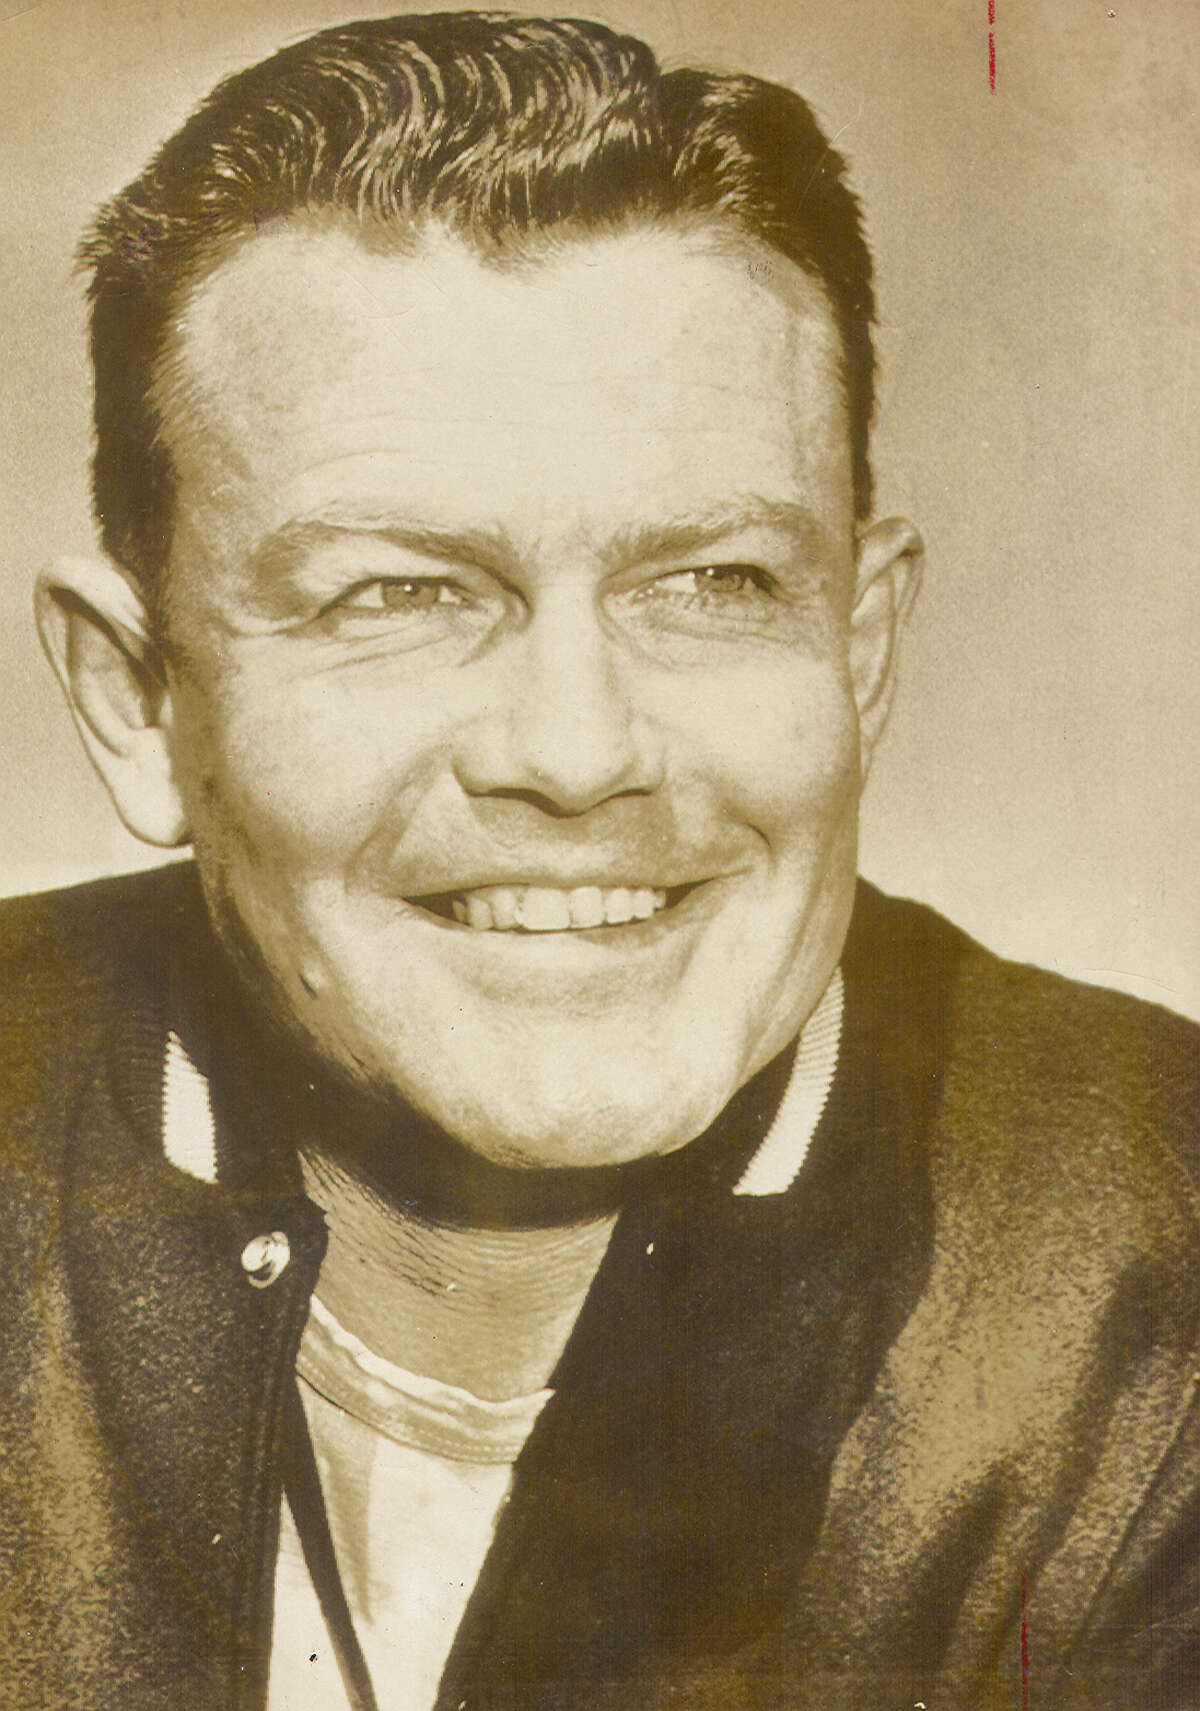 Dec. 18, 1956 ... Darrell Royal was appointed the new head football coach at the University of Texas. In this picture, he was the coach at the University of Washington.